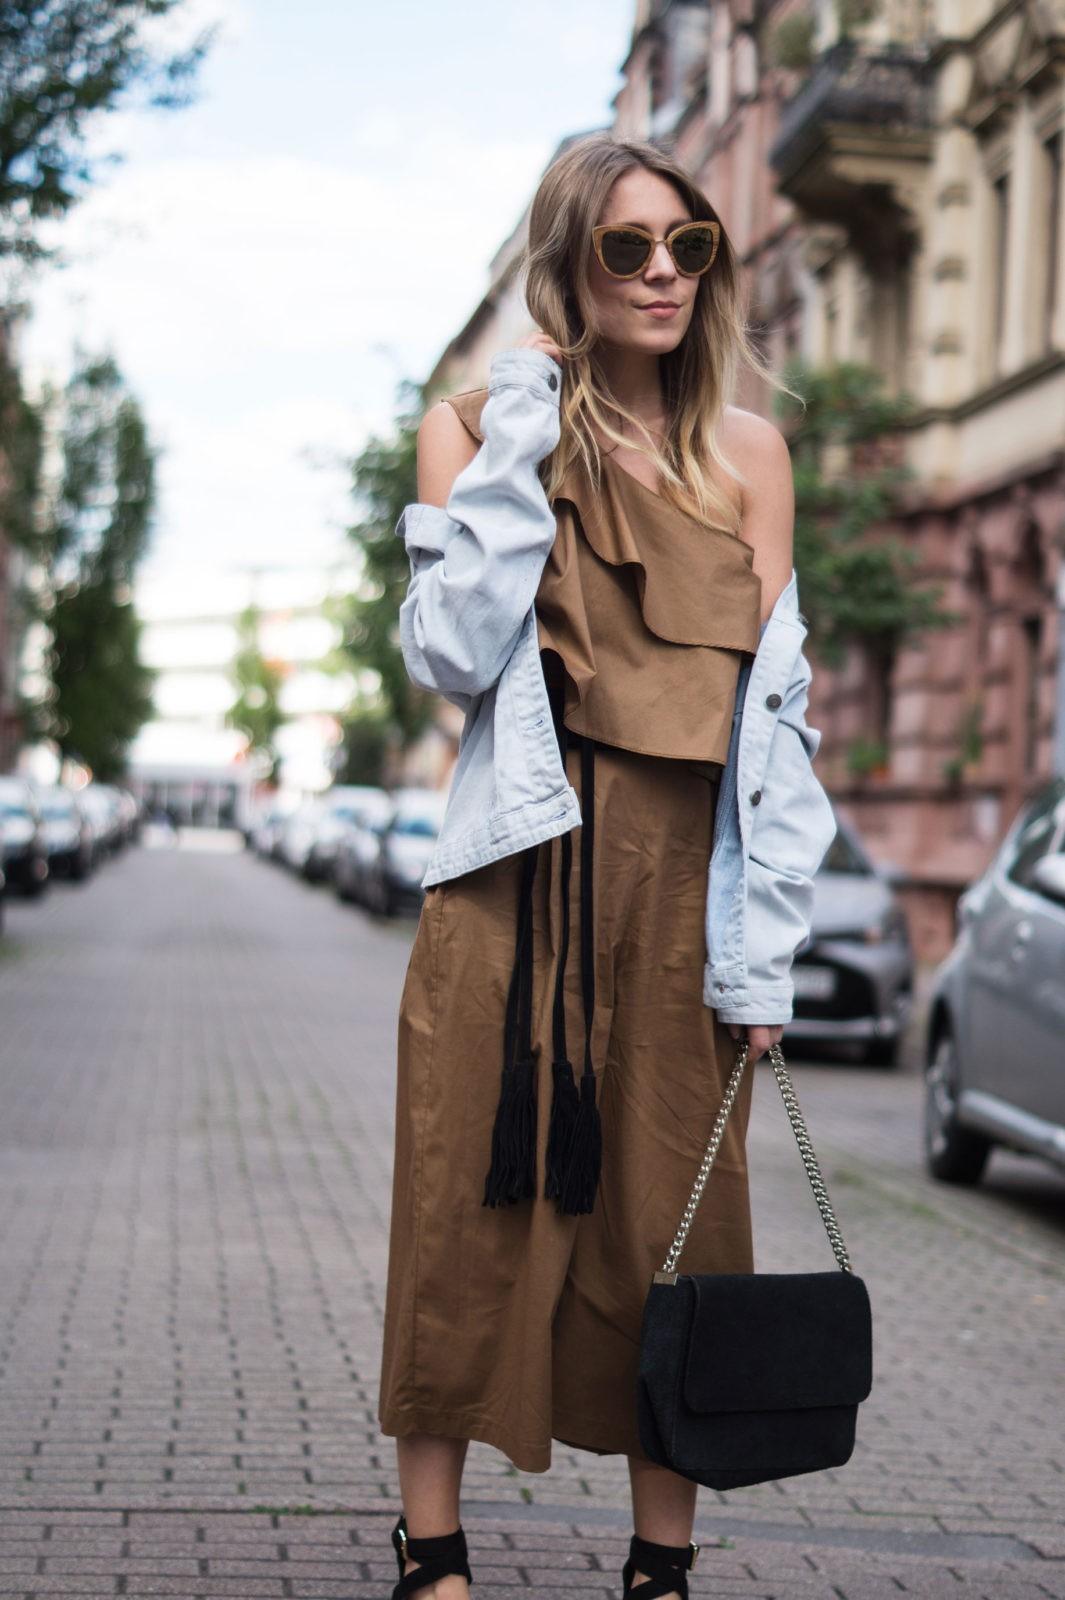 Sariety Modeblog Sarah Czok Fashionblogger Streetstyle Outfit Jumpsuit Obersize Denim Jeansjacke-7